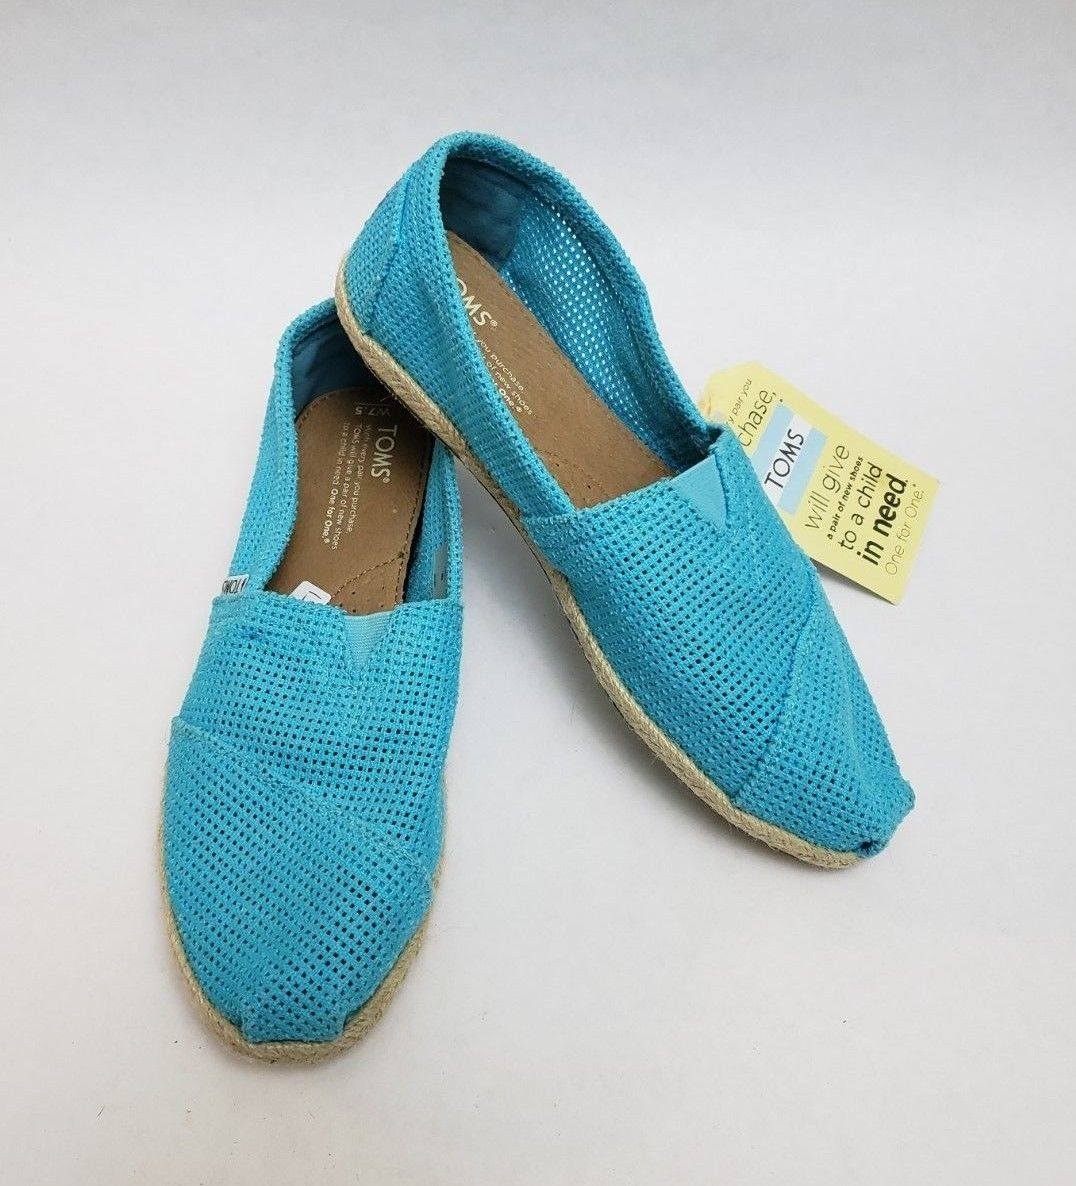 7f2b441f795 Toms Shoes Flats Turquoise Freetown Classic and 50 similar items. S l1600